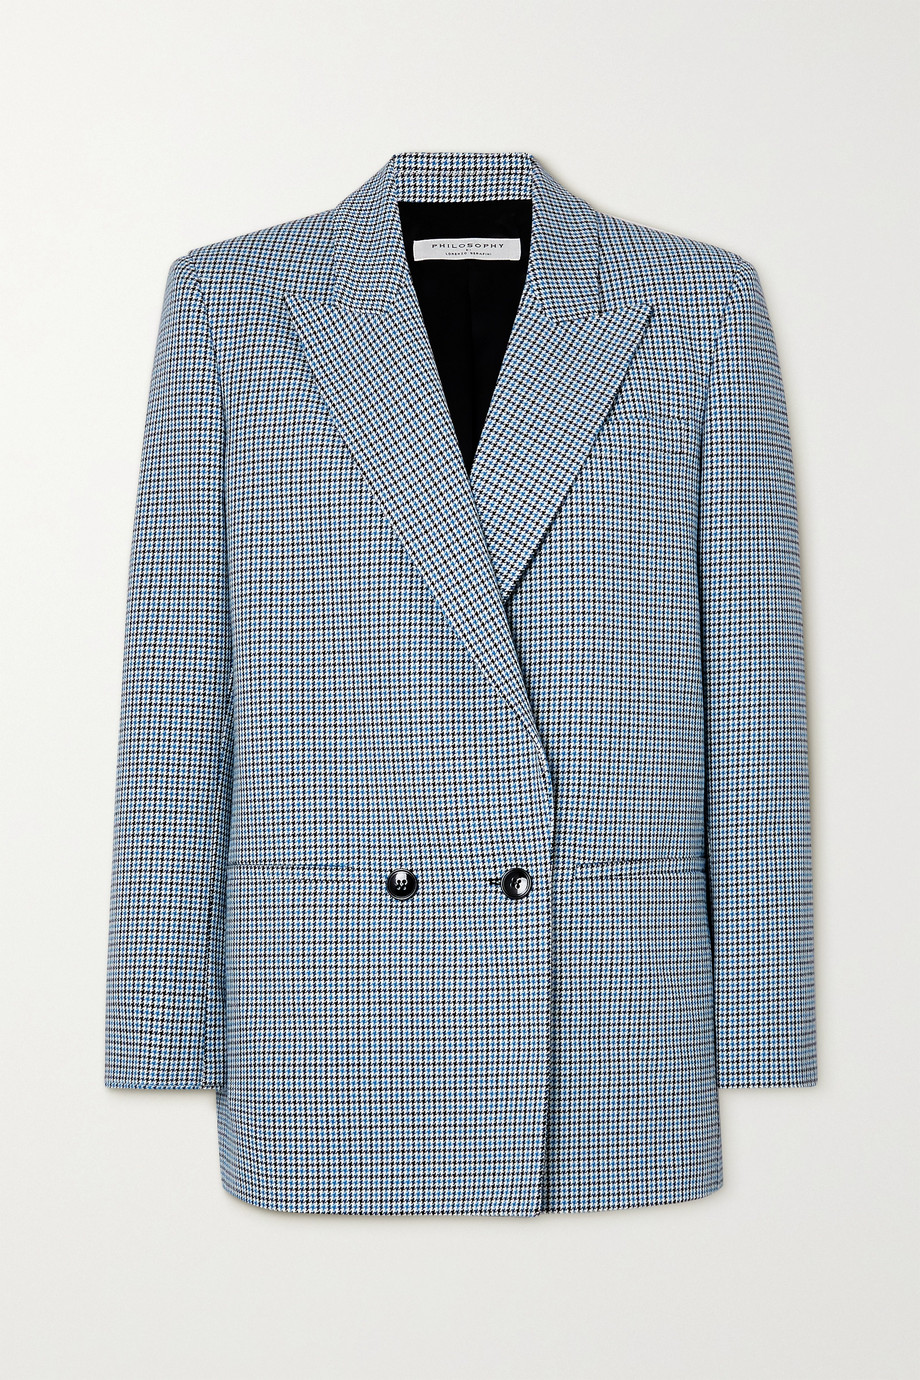 Philosophy di Lorenzo Serafini Double-breasted houndstooth cotton blazer